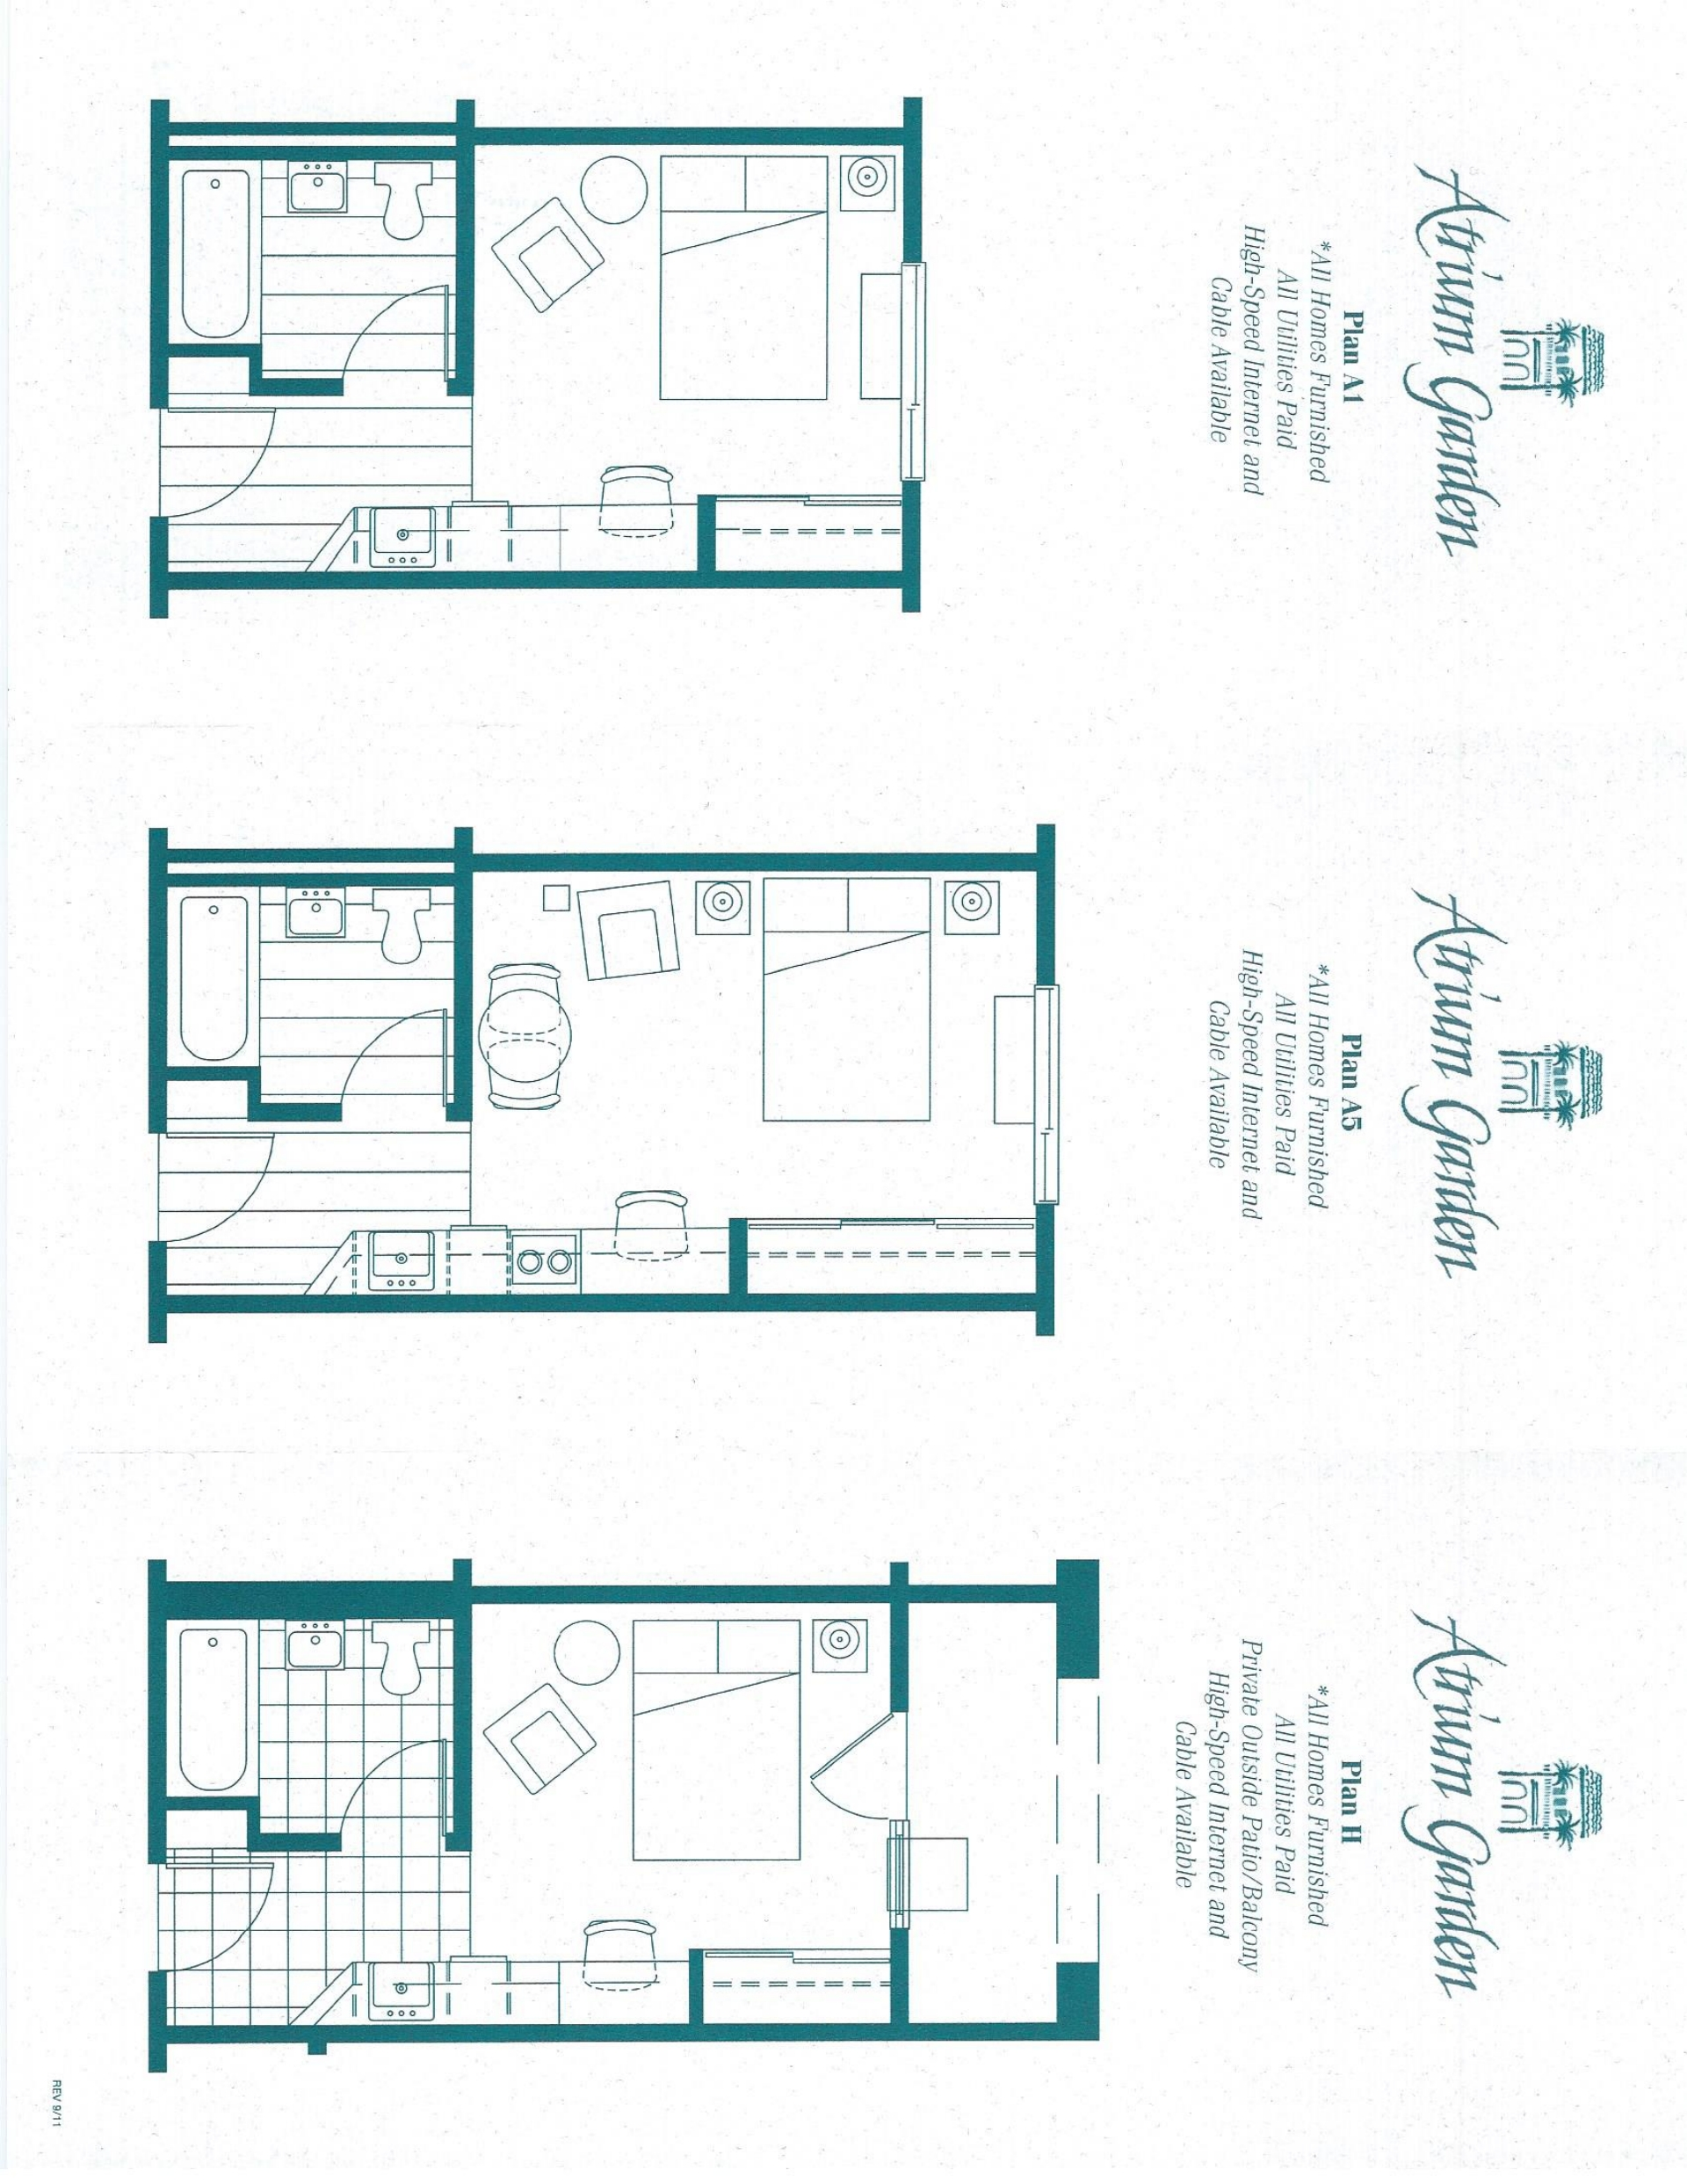 Atrium garden studio apartments - Planning the studio apartment floor plans ...